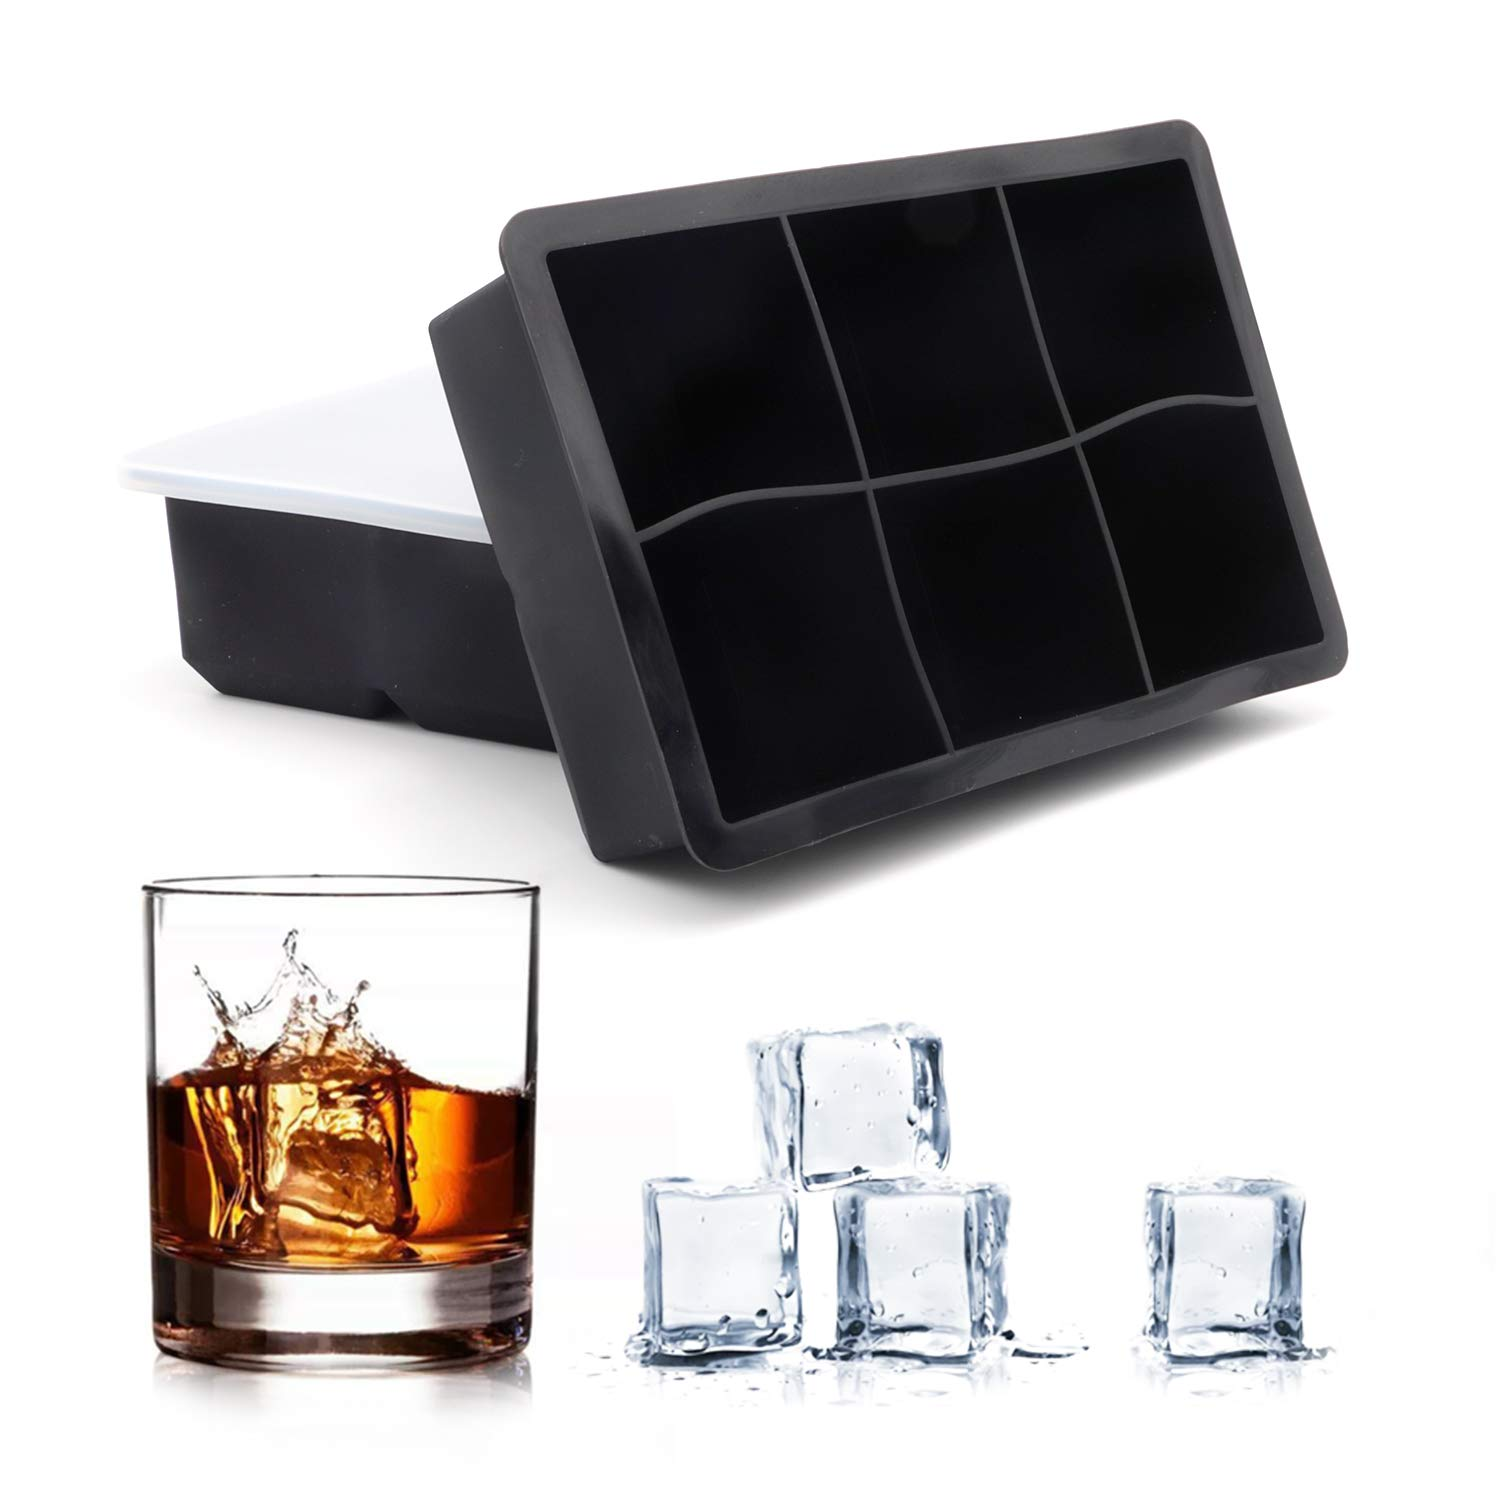 JevoiSonne Ice Cube tray Silicone Ice Cube Molds for Whiskey and Cocktails and Homemade Beverages,Keep Drinks Cool For A Long Time , Easy Release Reusable and Bpa Free (6x2)